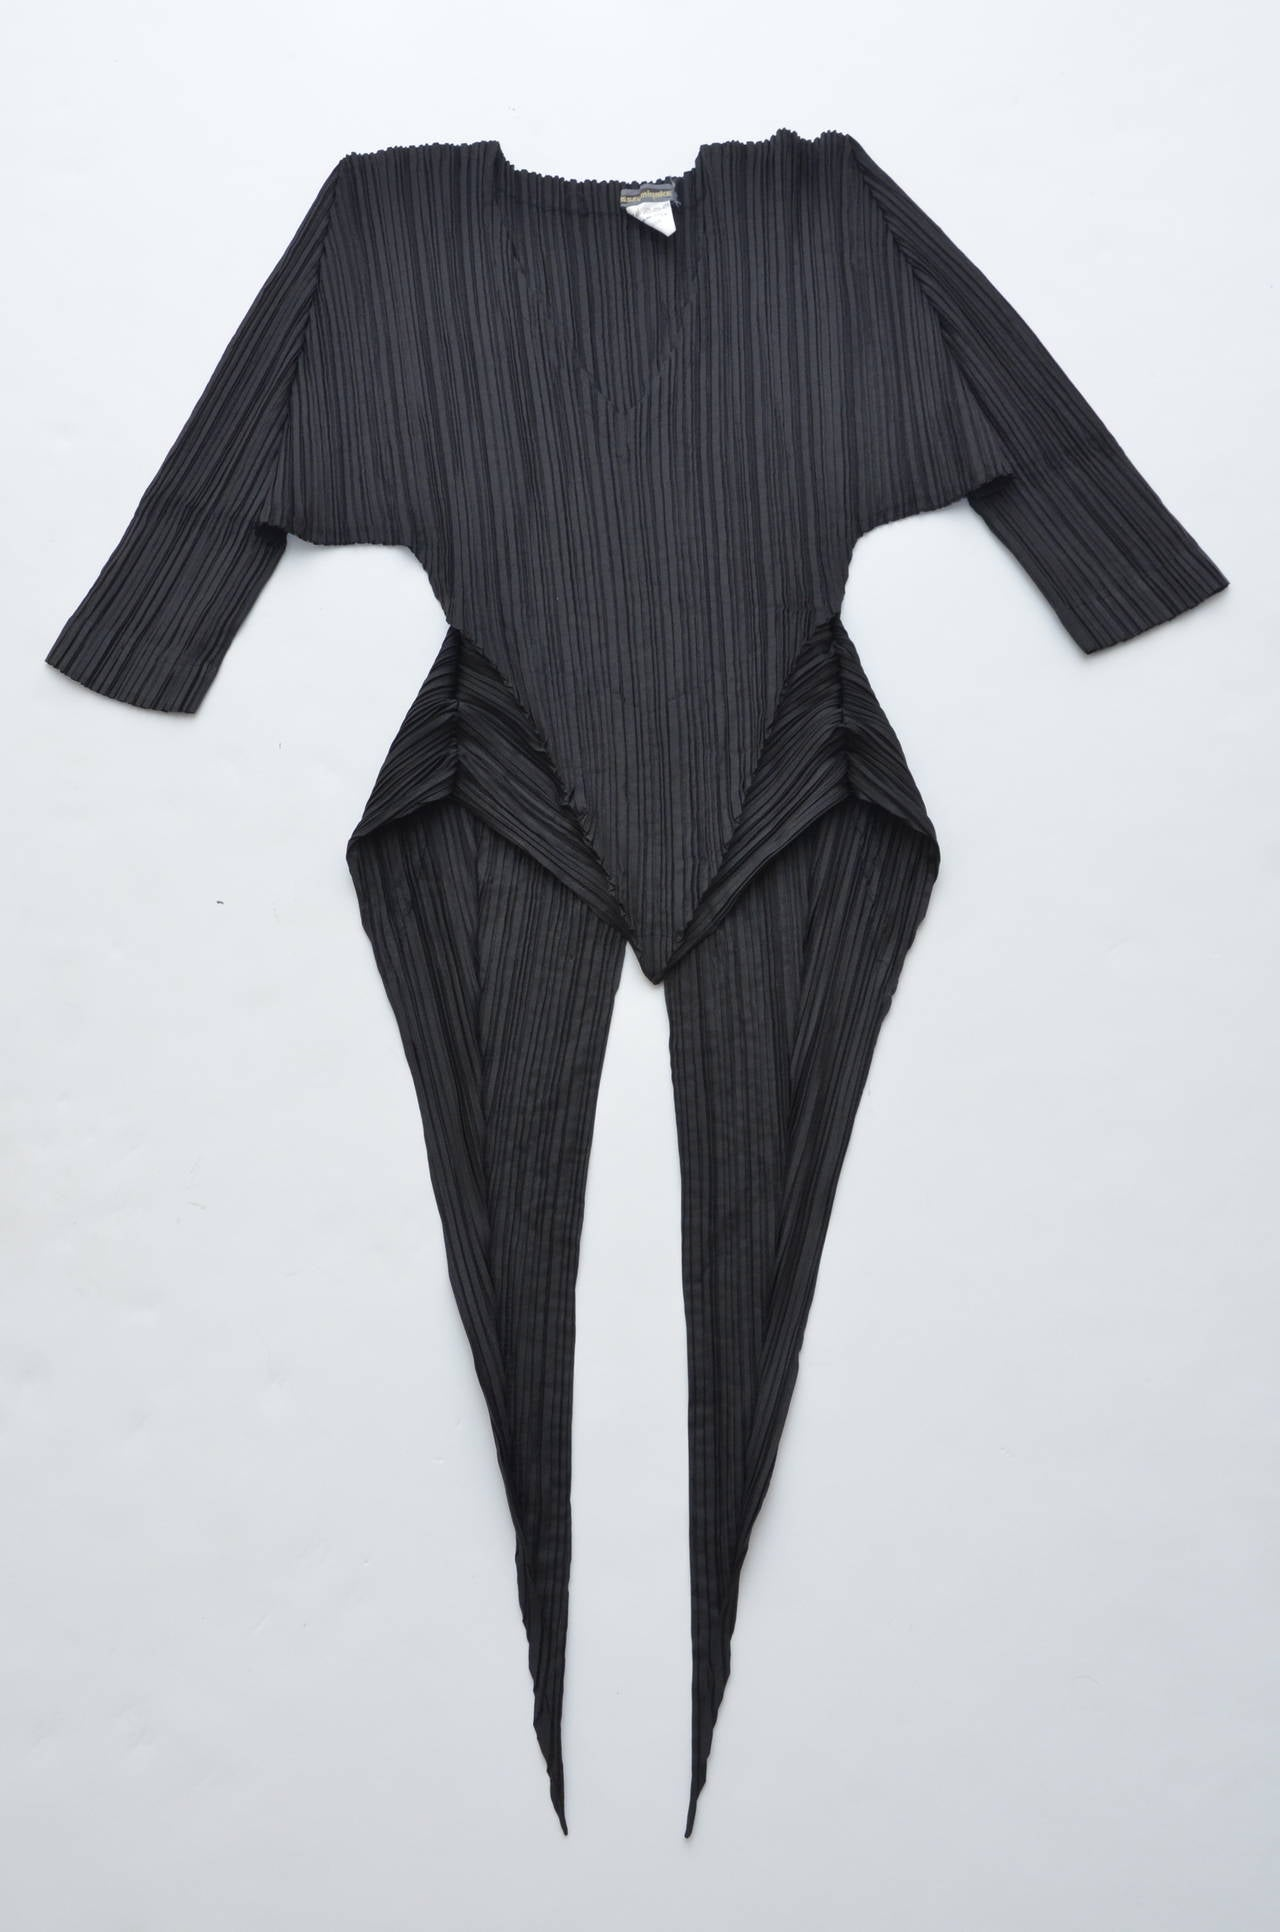 Issey Miyake  Origami Pleat  Top With Tails 1989 For Sale 2